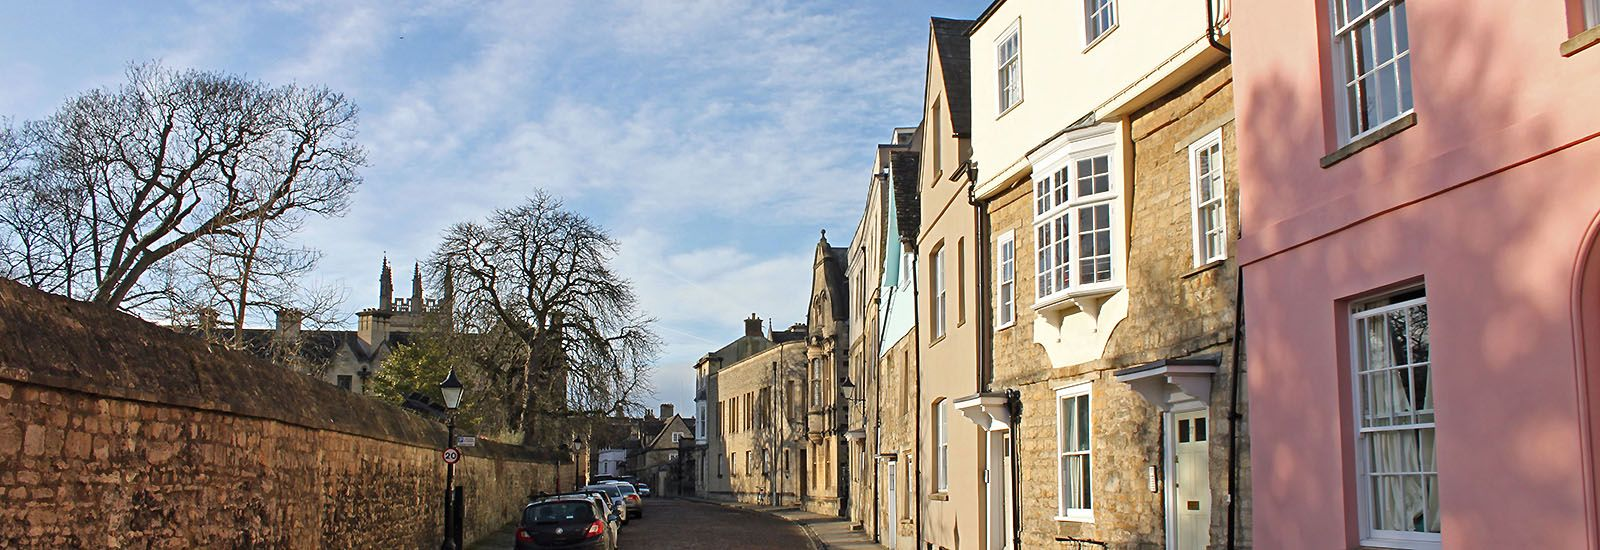 A street in Oxford in winter with a blue sky